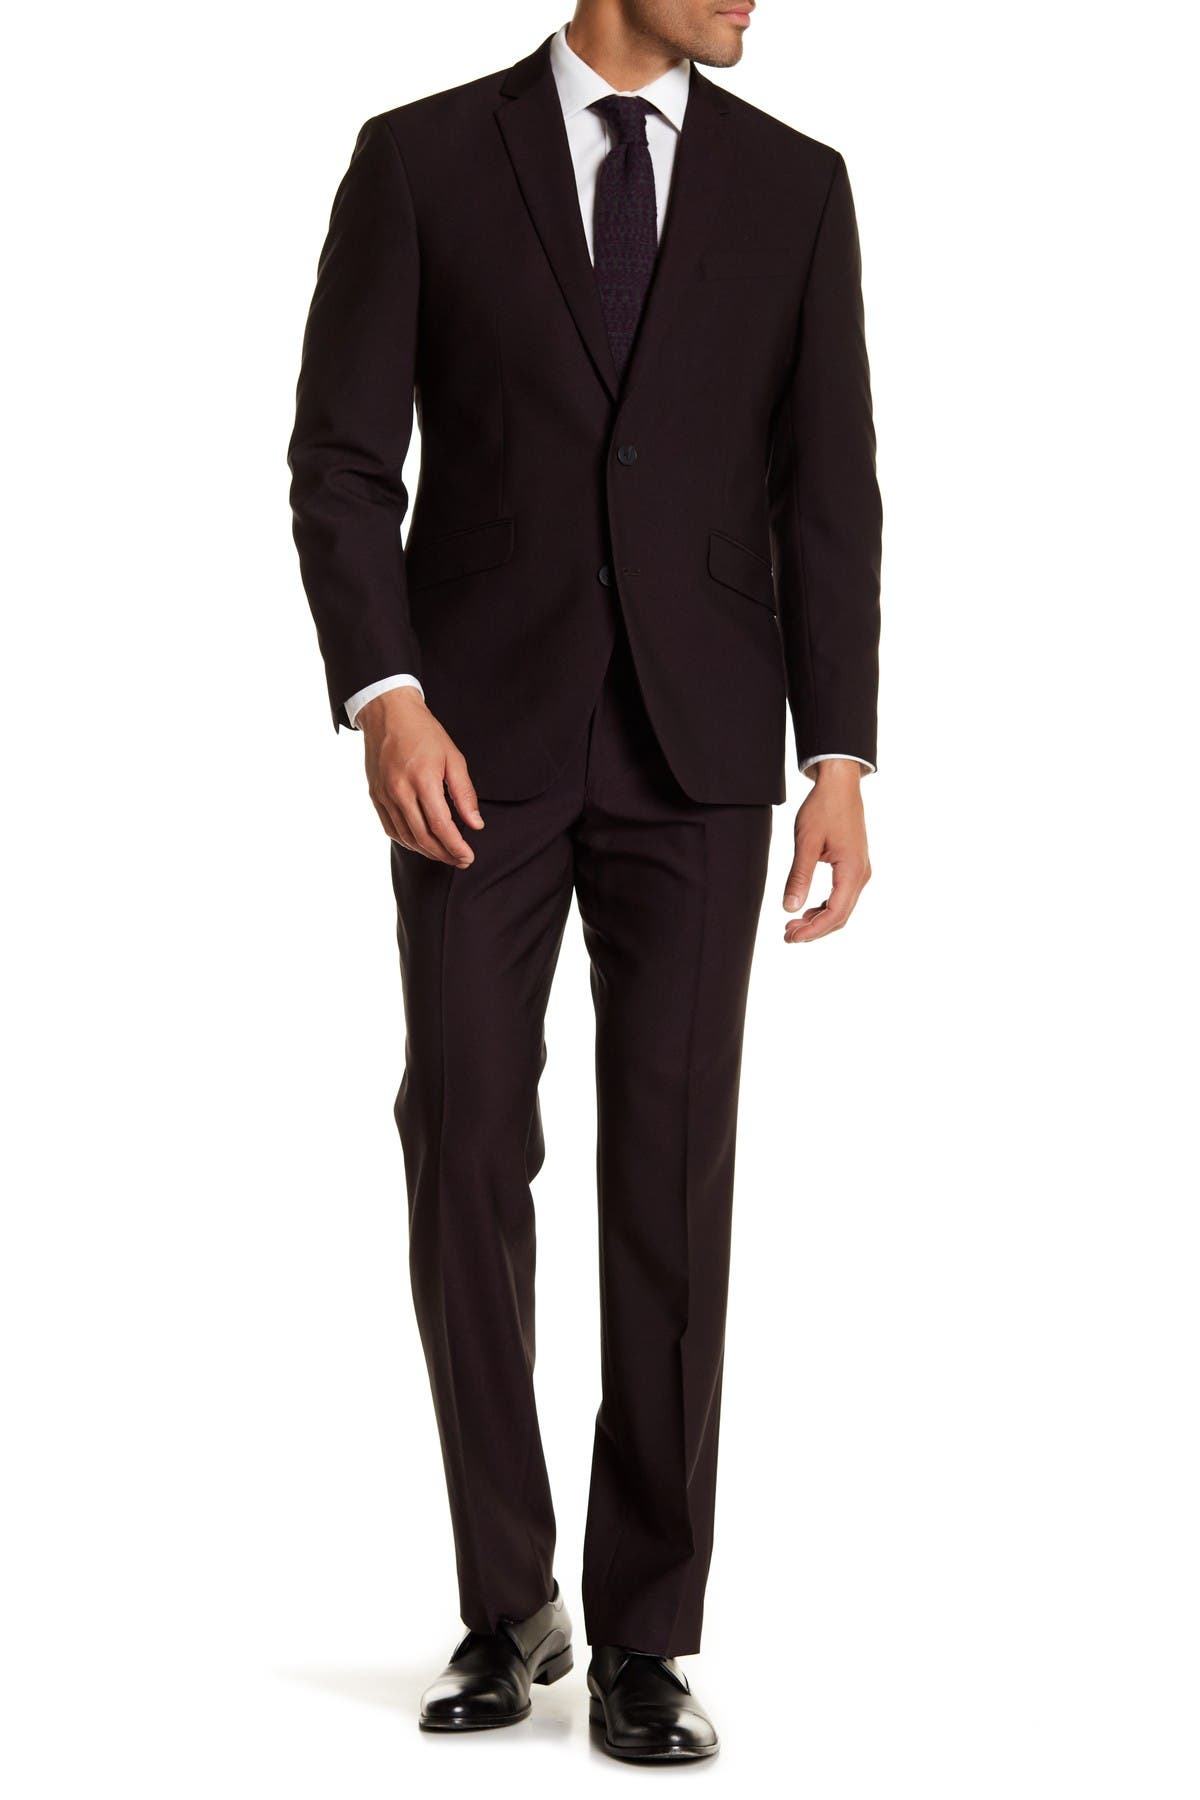 Image of Kenneth Cole Reaction Burgundy Solid Two Button Notch Lapel Performance Stretch Slim Fit Suit